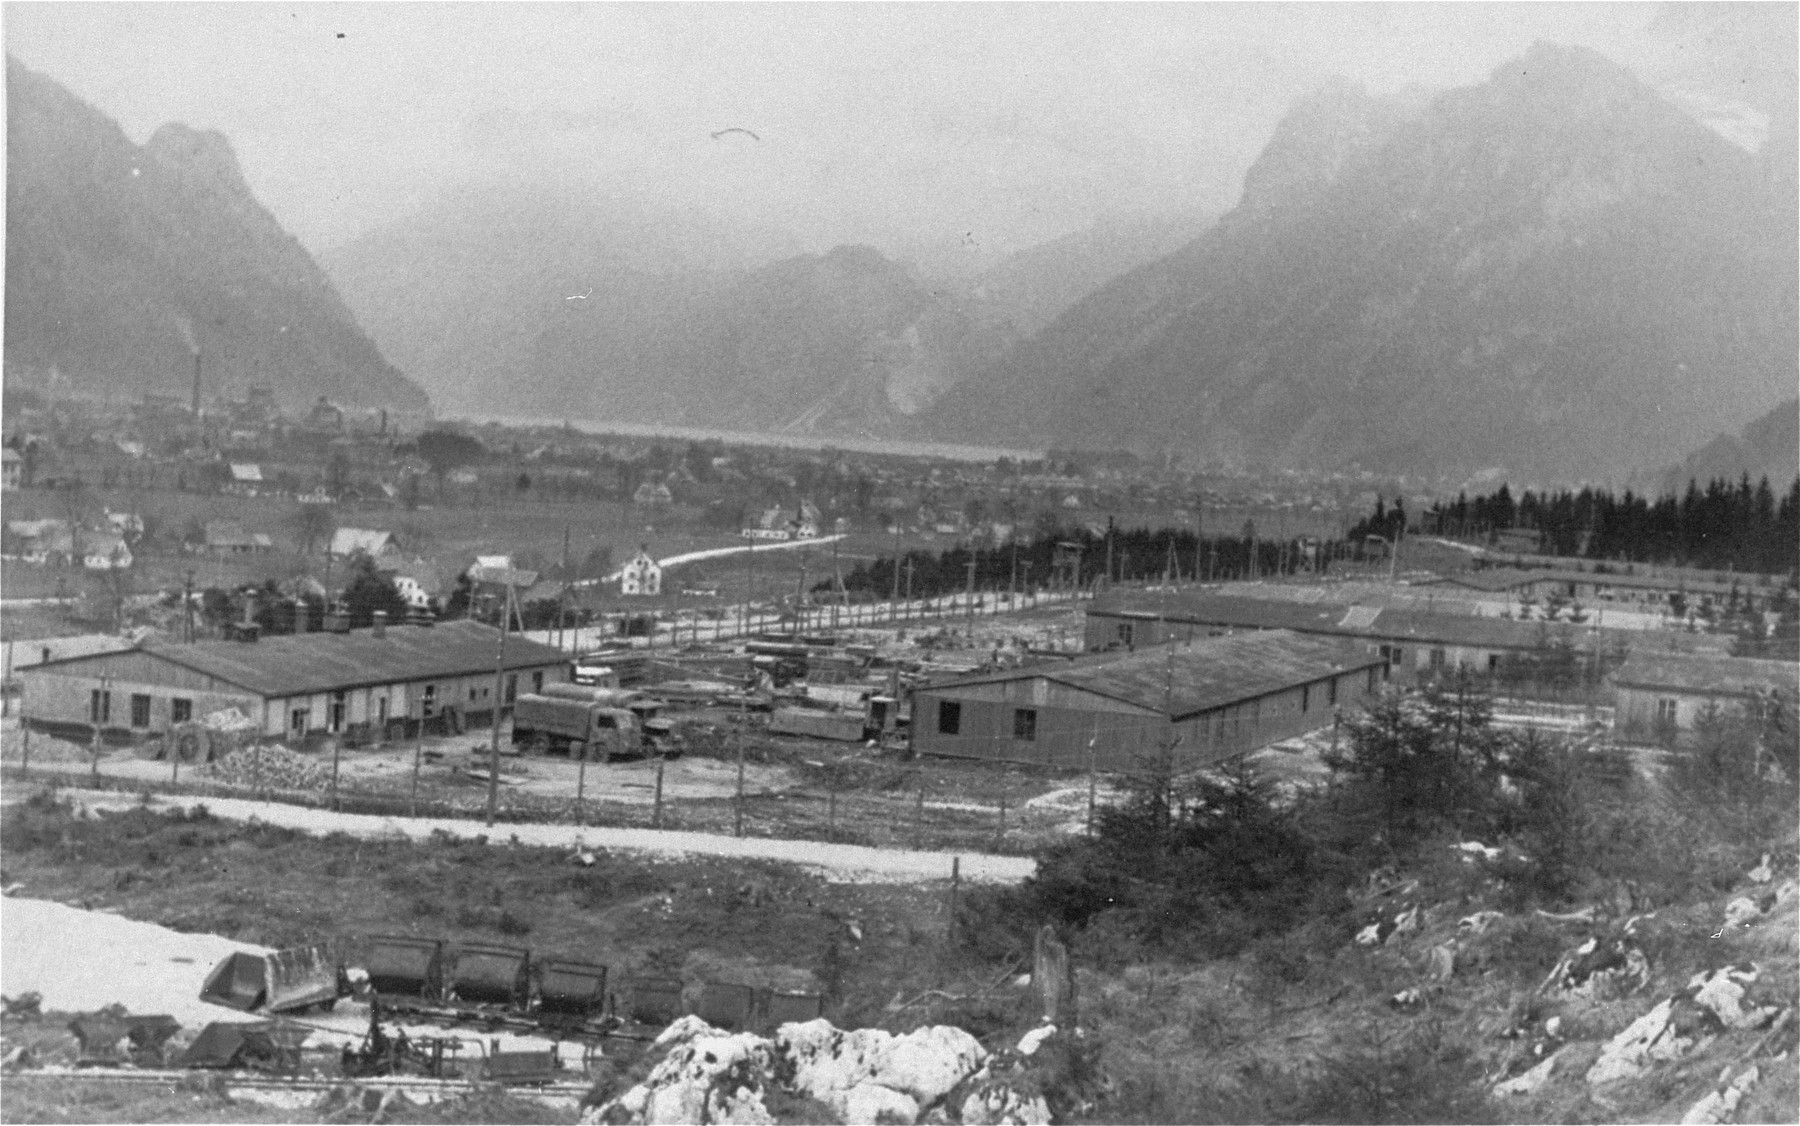 View of the Ebensee concentration camp.